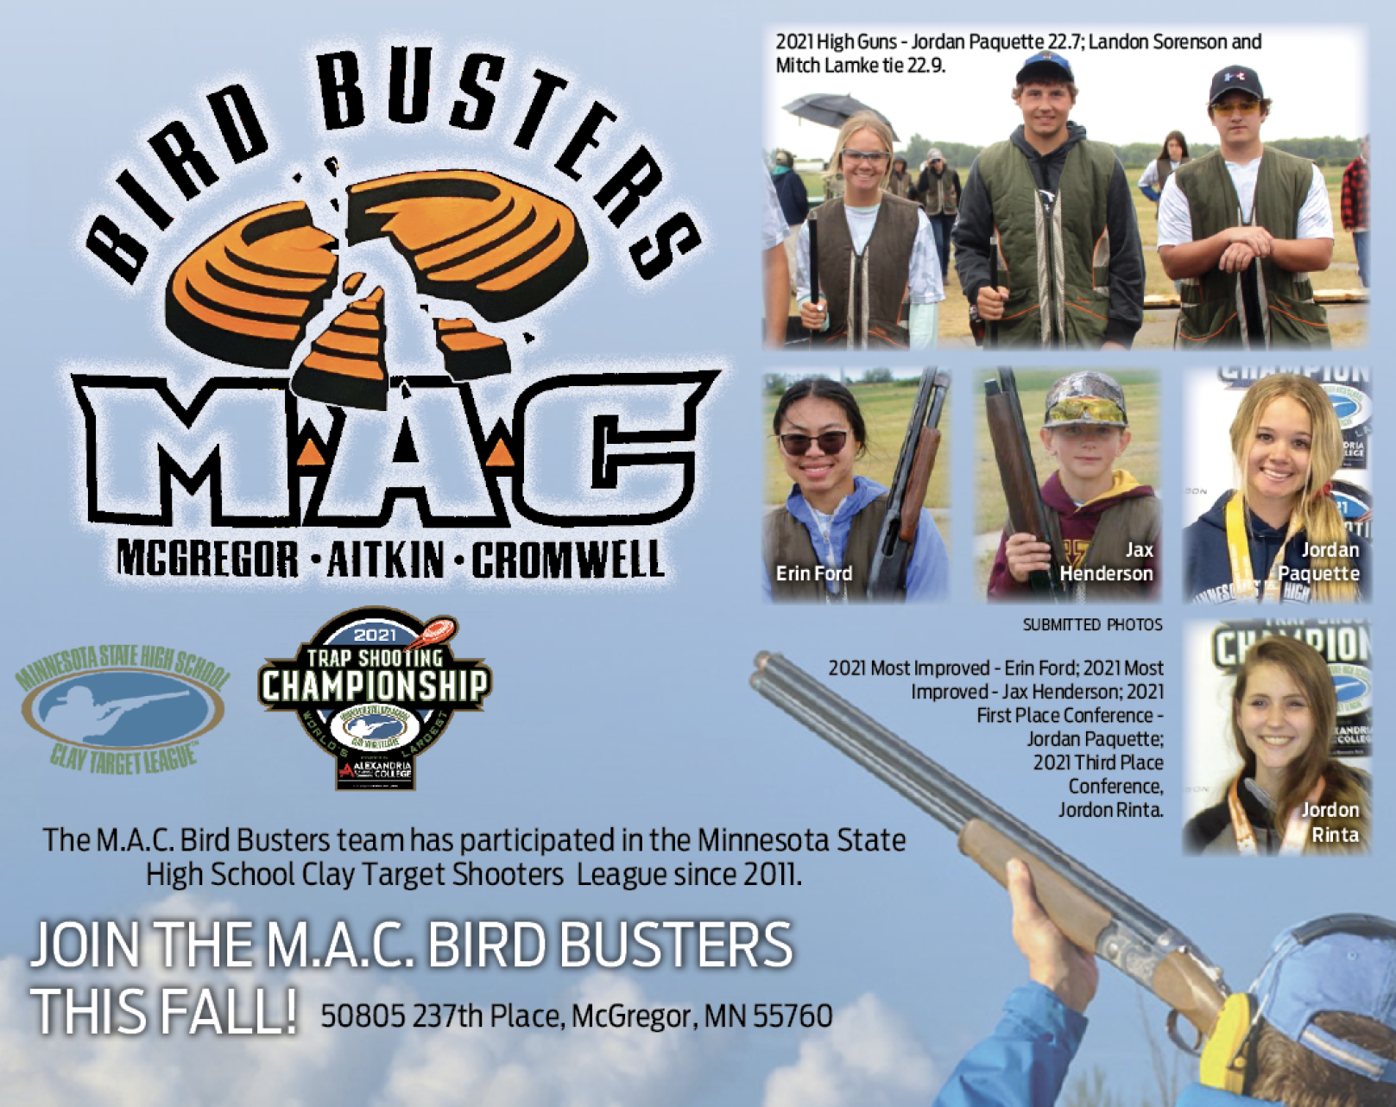 Join the M.A.C. Bird Busters this fall!